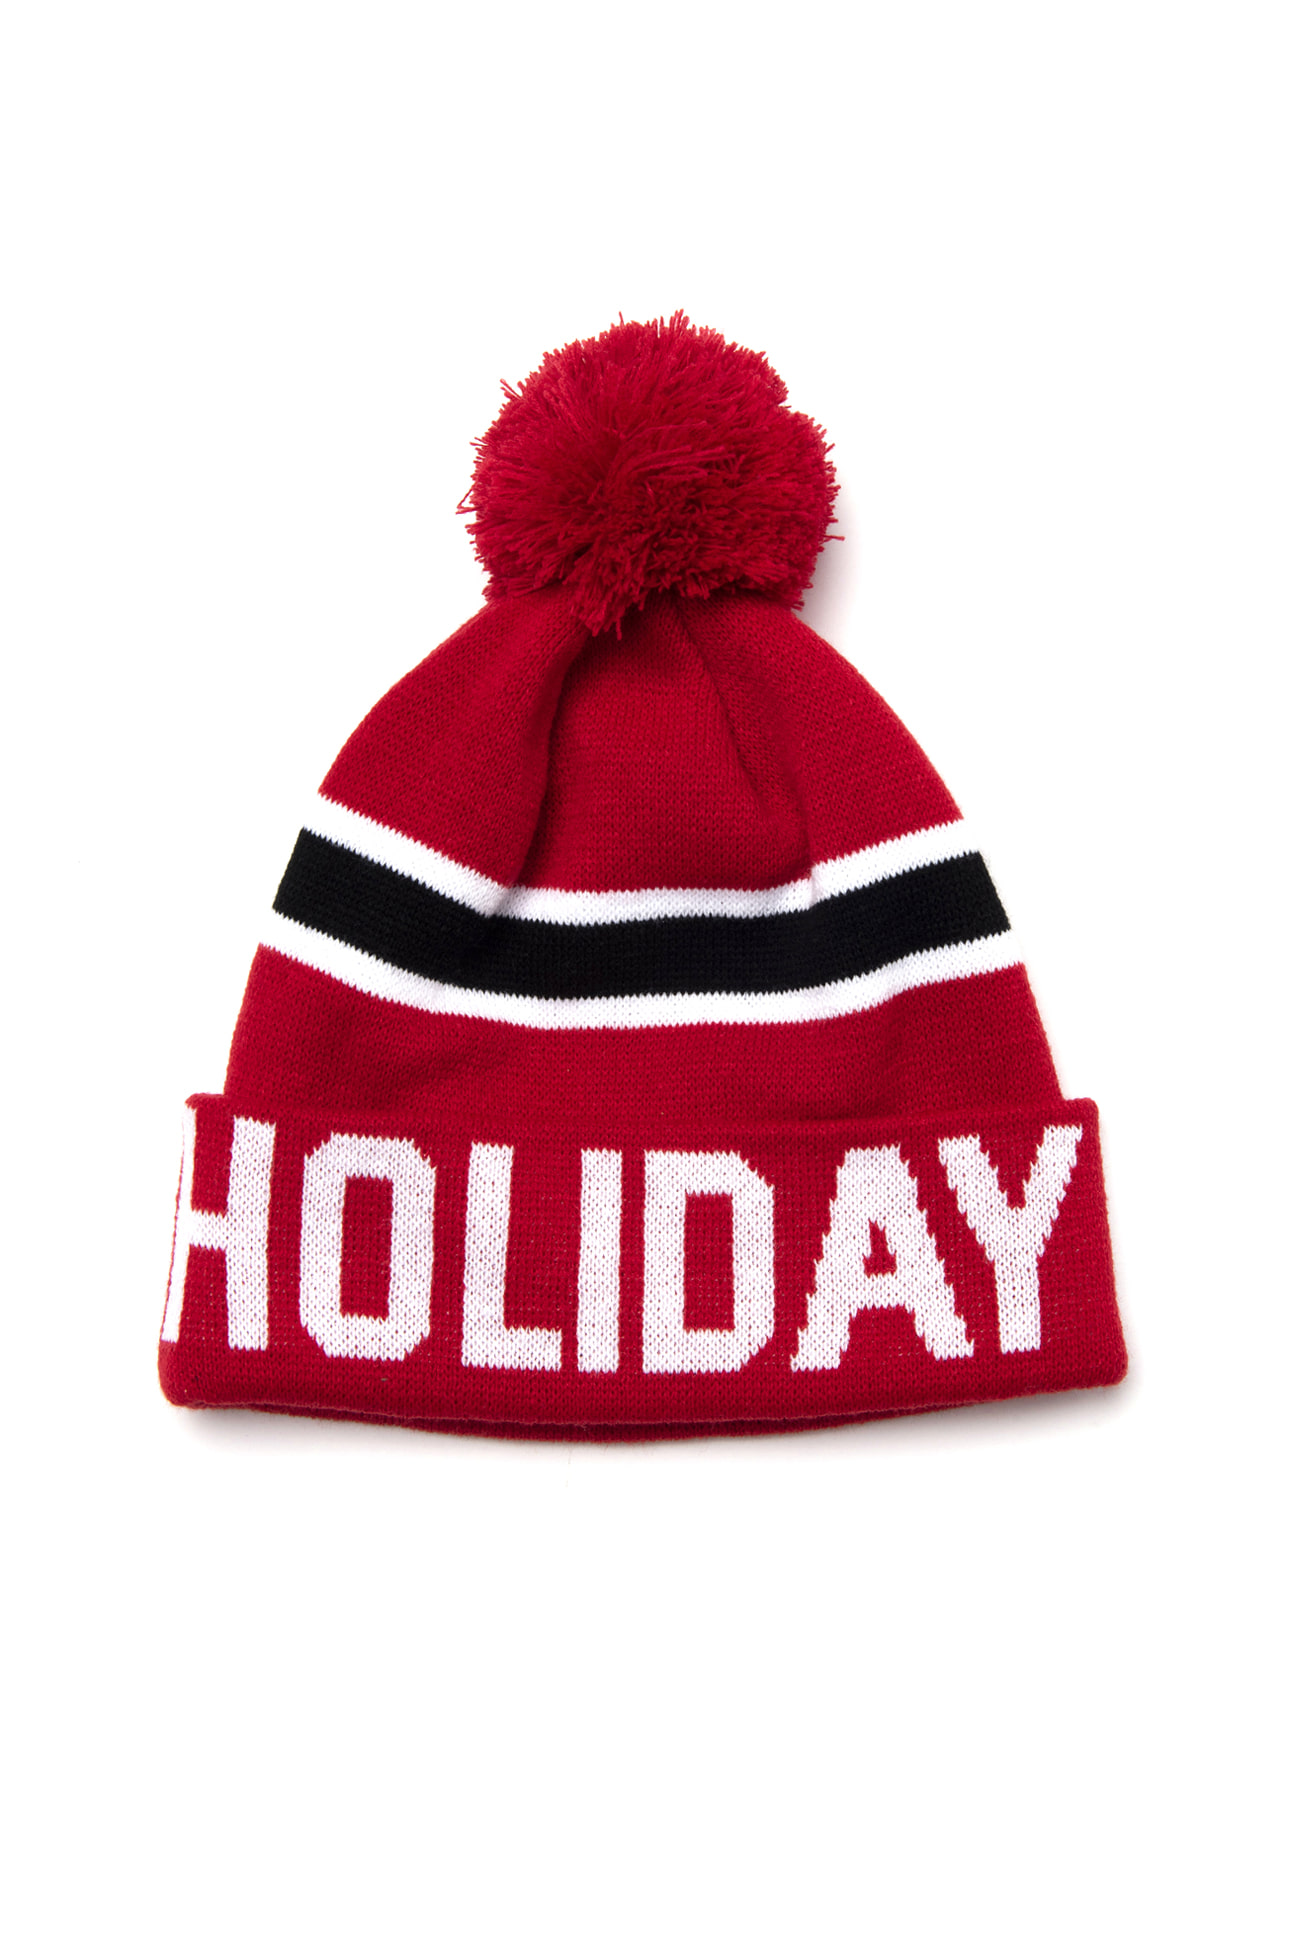 LINE beanie - redHOLIDAY OUTERWEAR